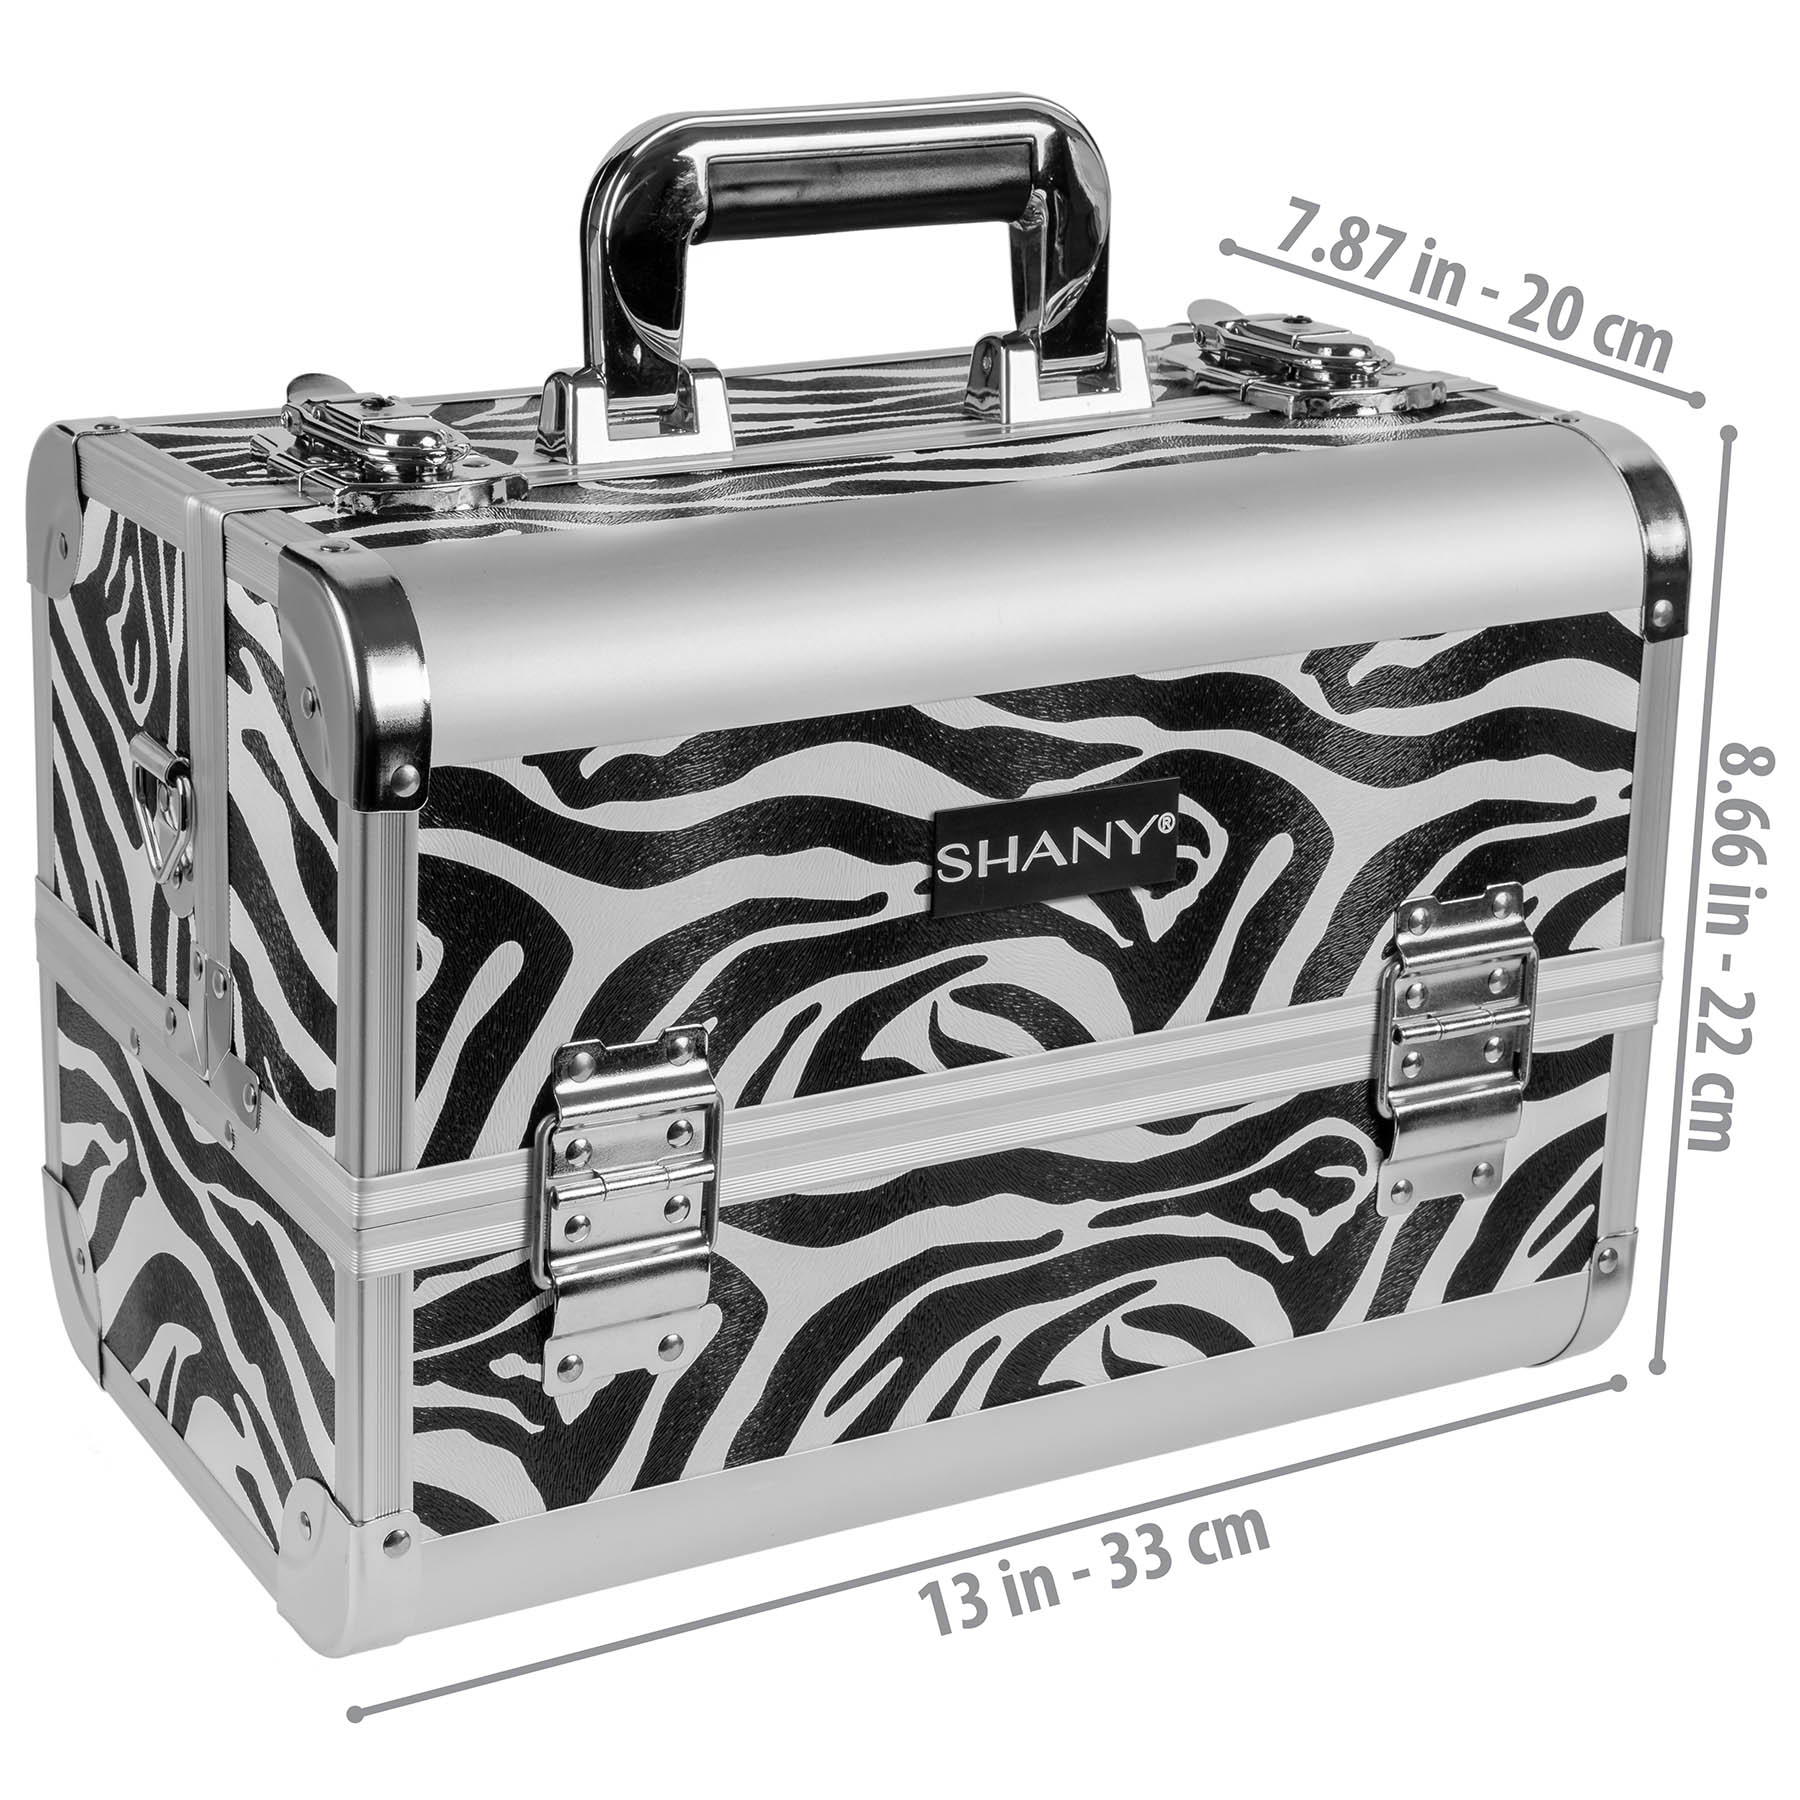 SHANY-Fantasy-Collection-Makeup-Artists-Cosmetics-Train-Case miniature 73